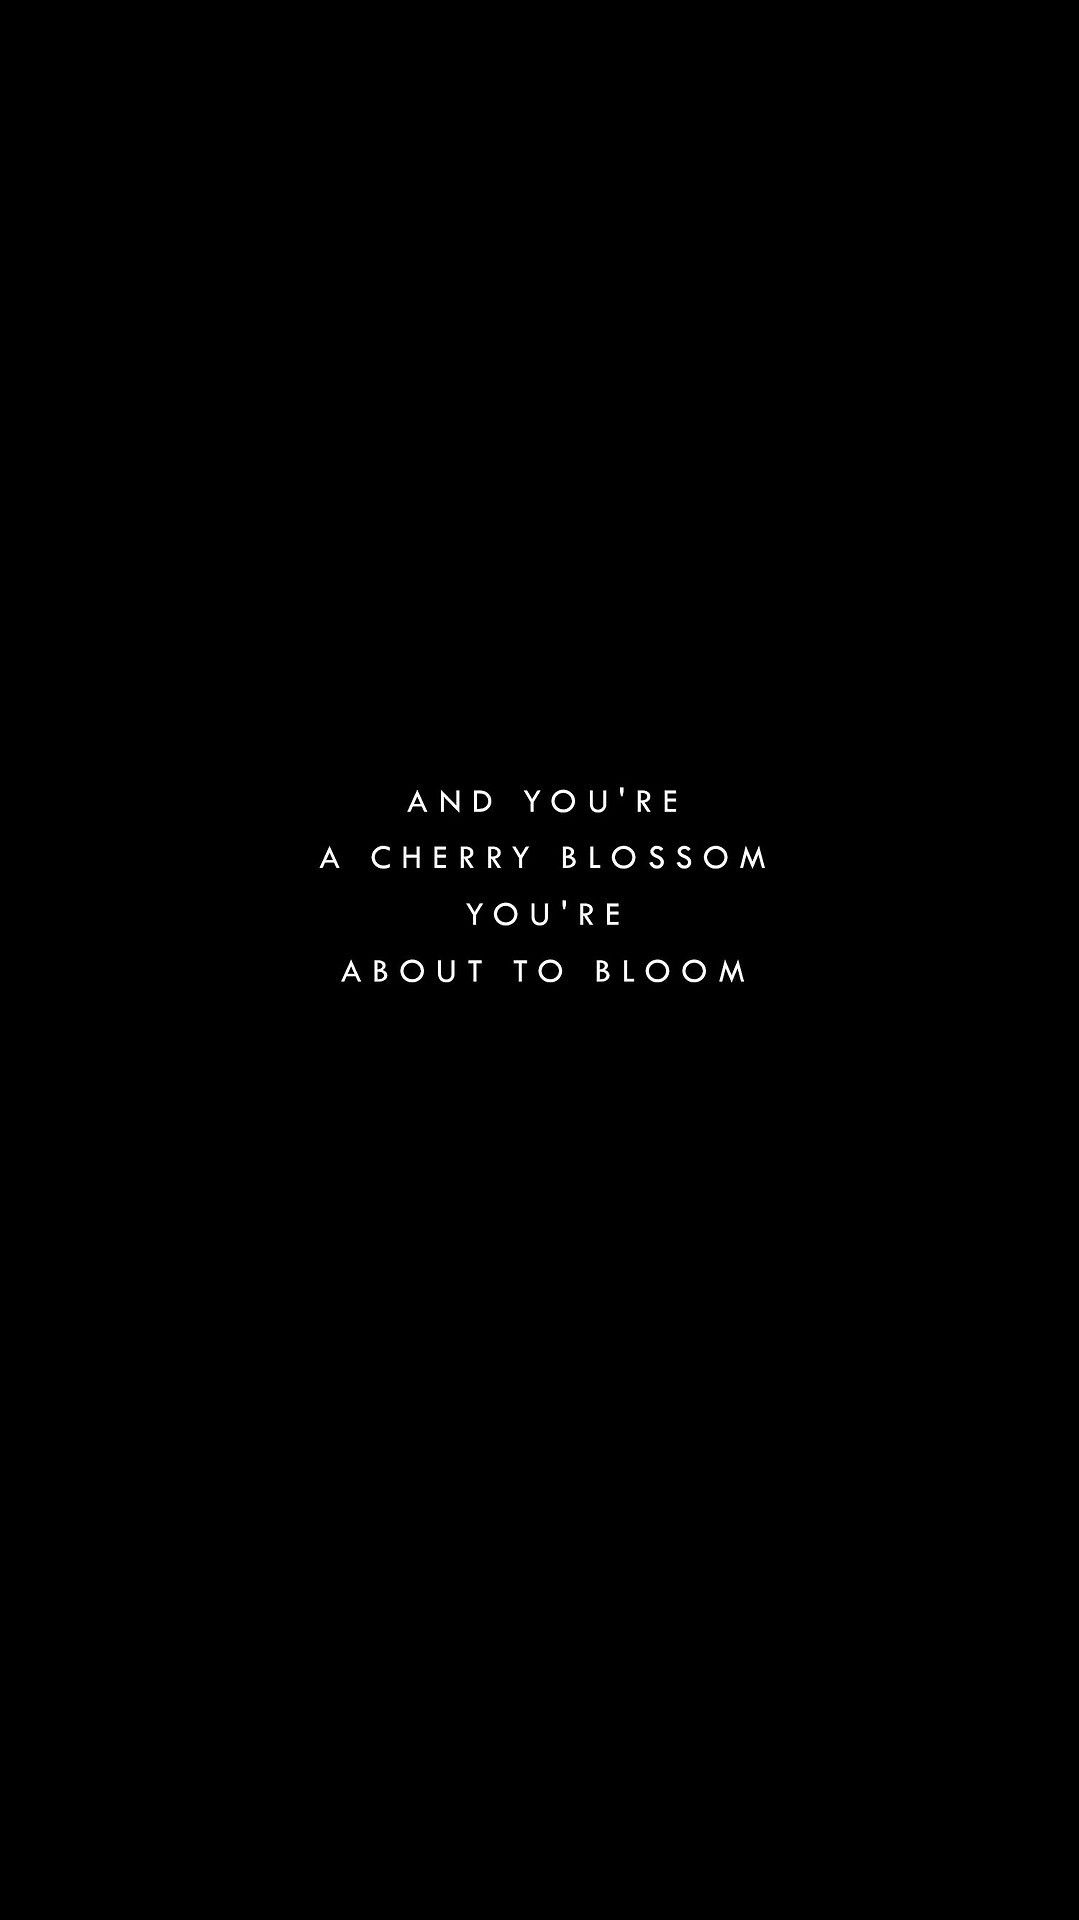 Pin By Ruzell Del On Black Quotes Quote Aesthetic Dark Quotes Mood Quotes